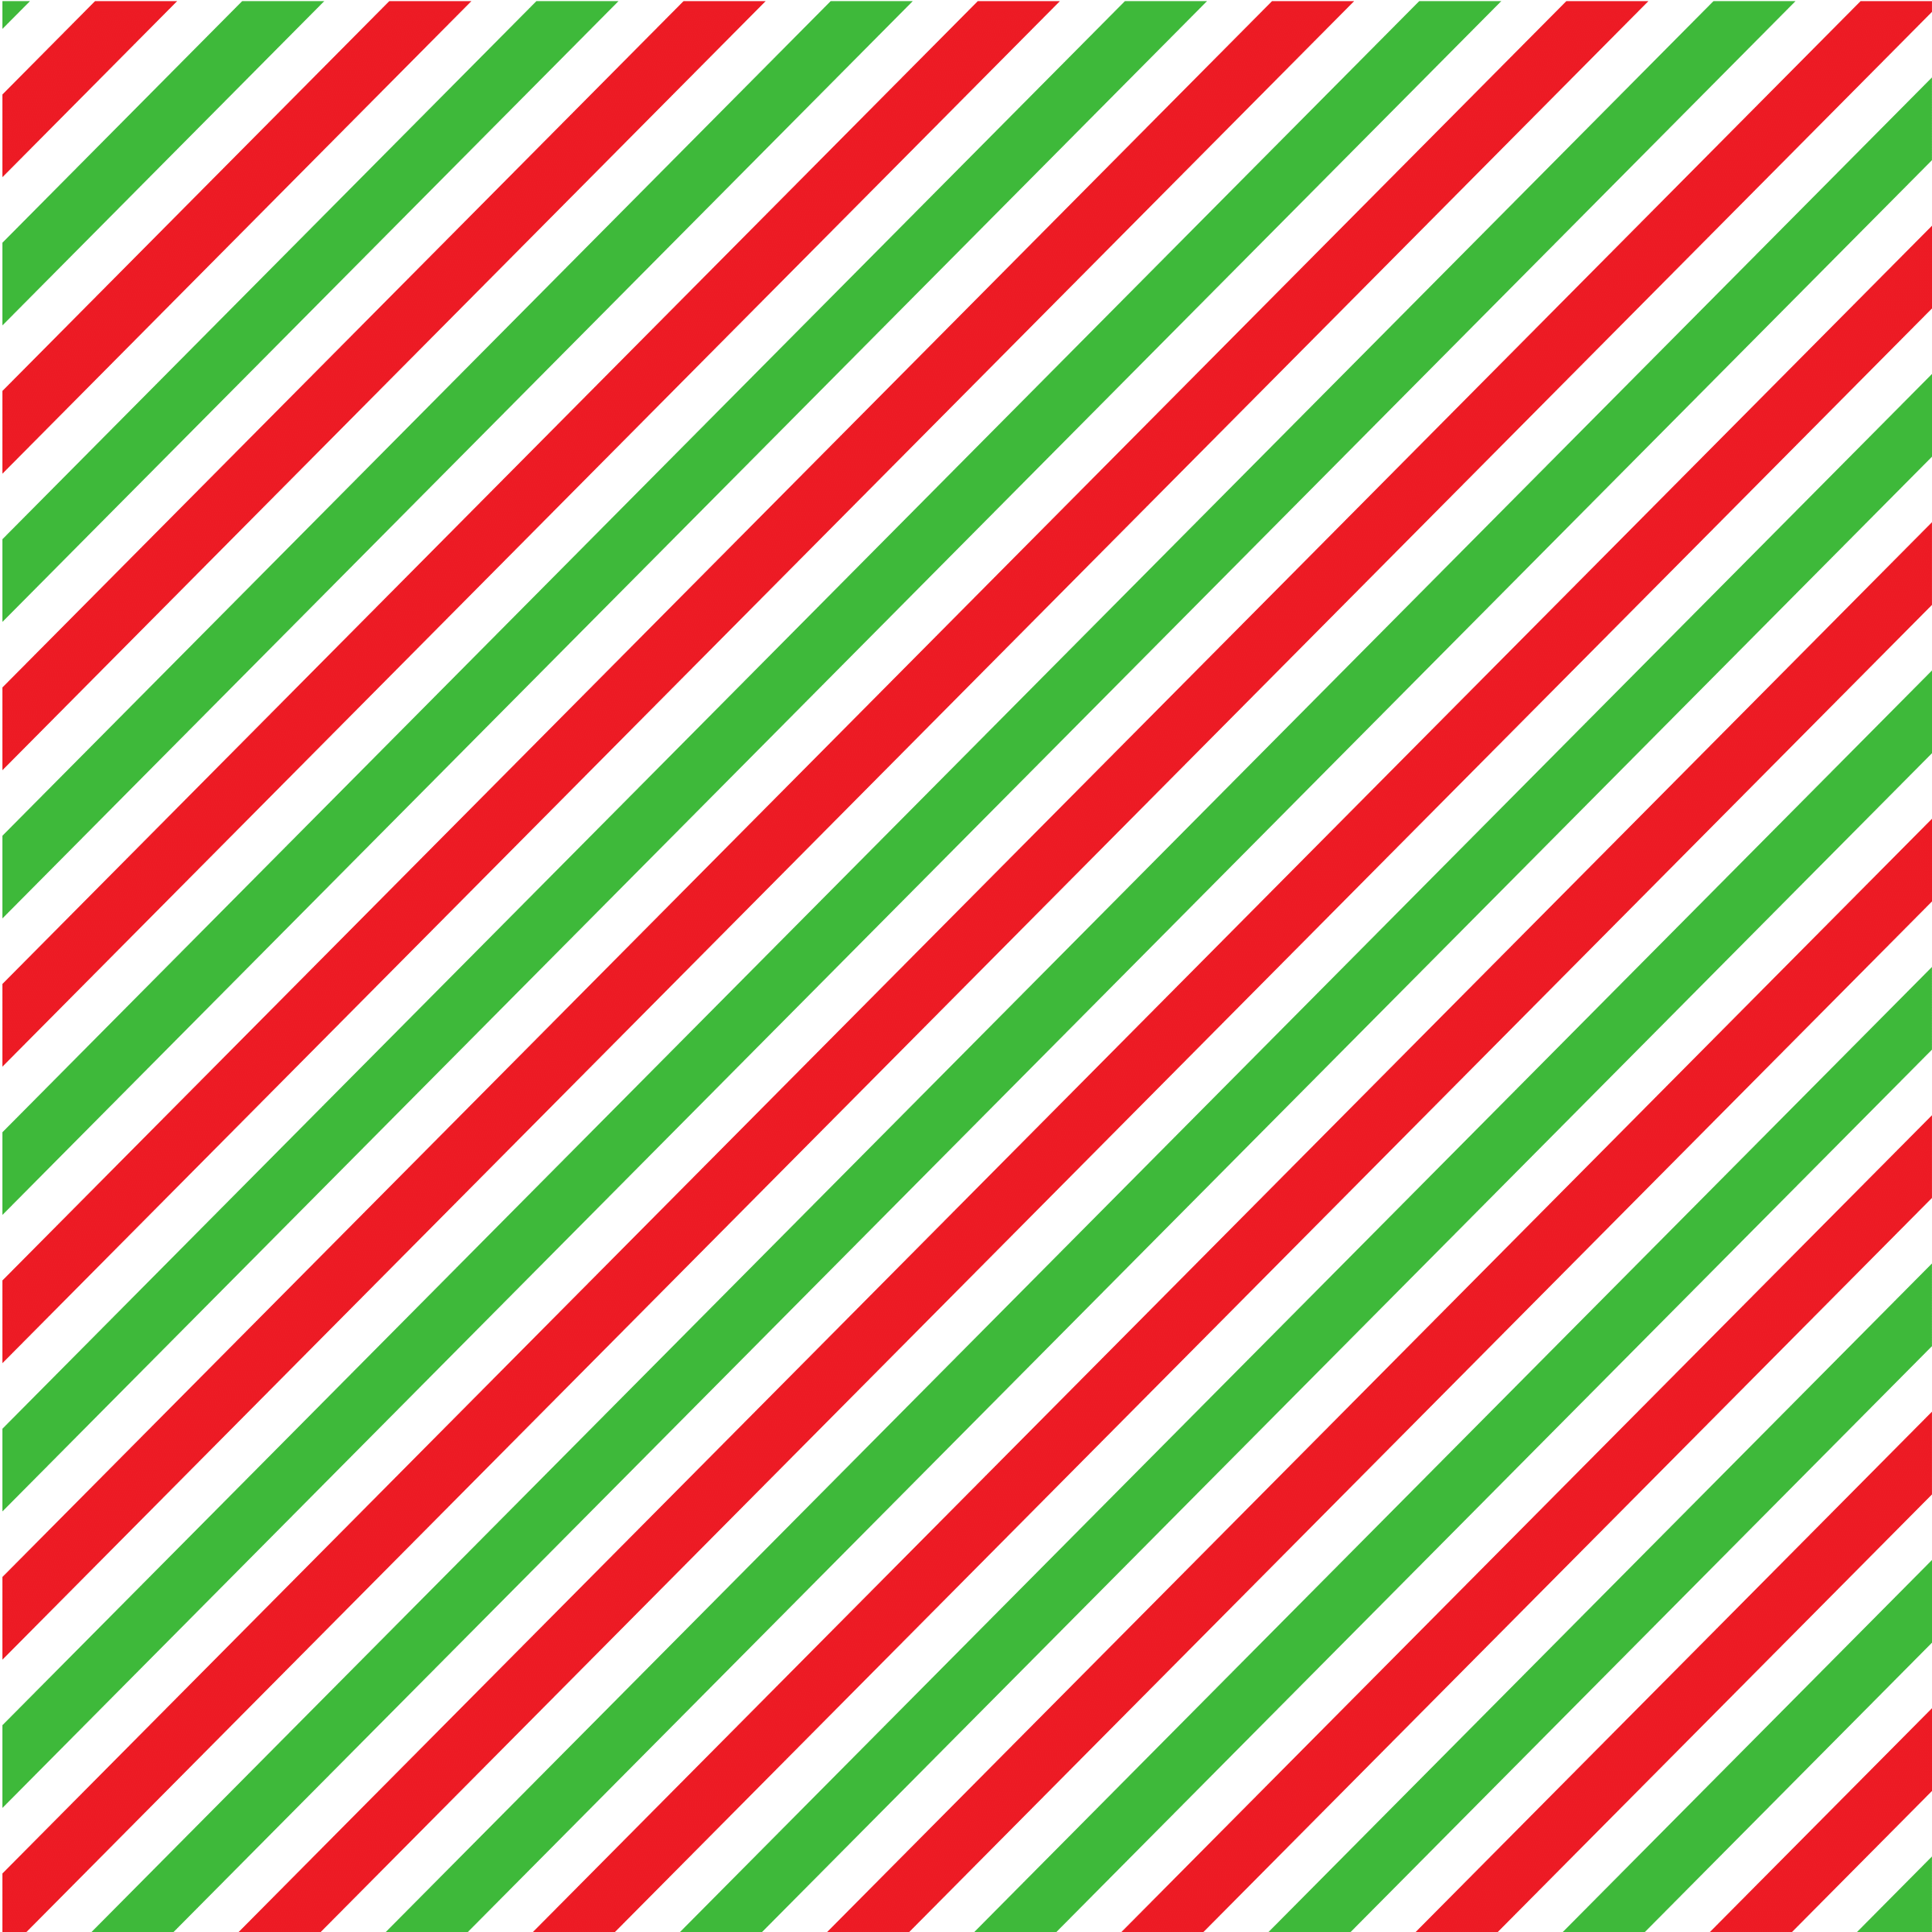 gingerbread-candy-cane-stripes-1